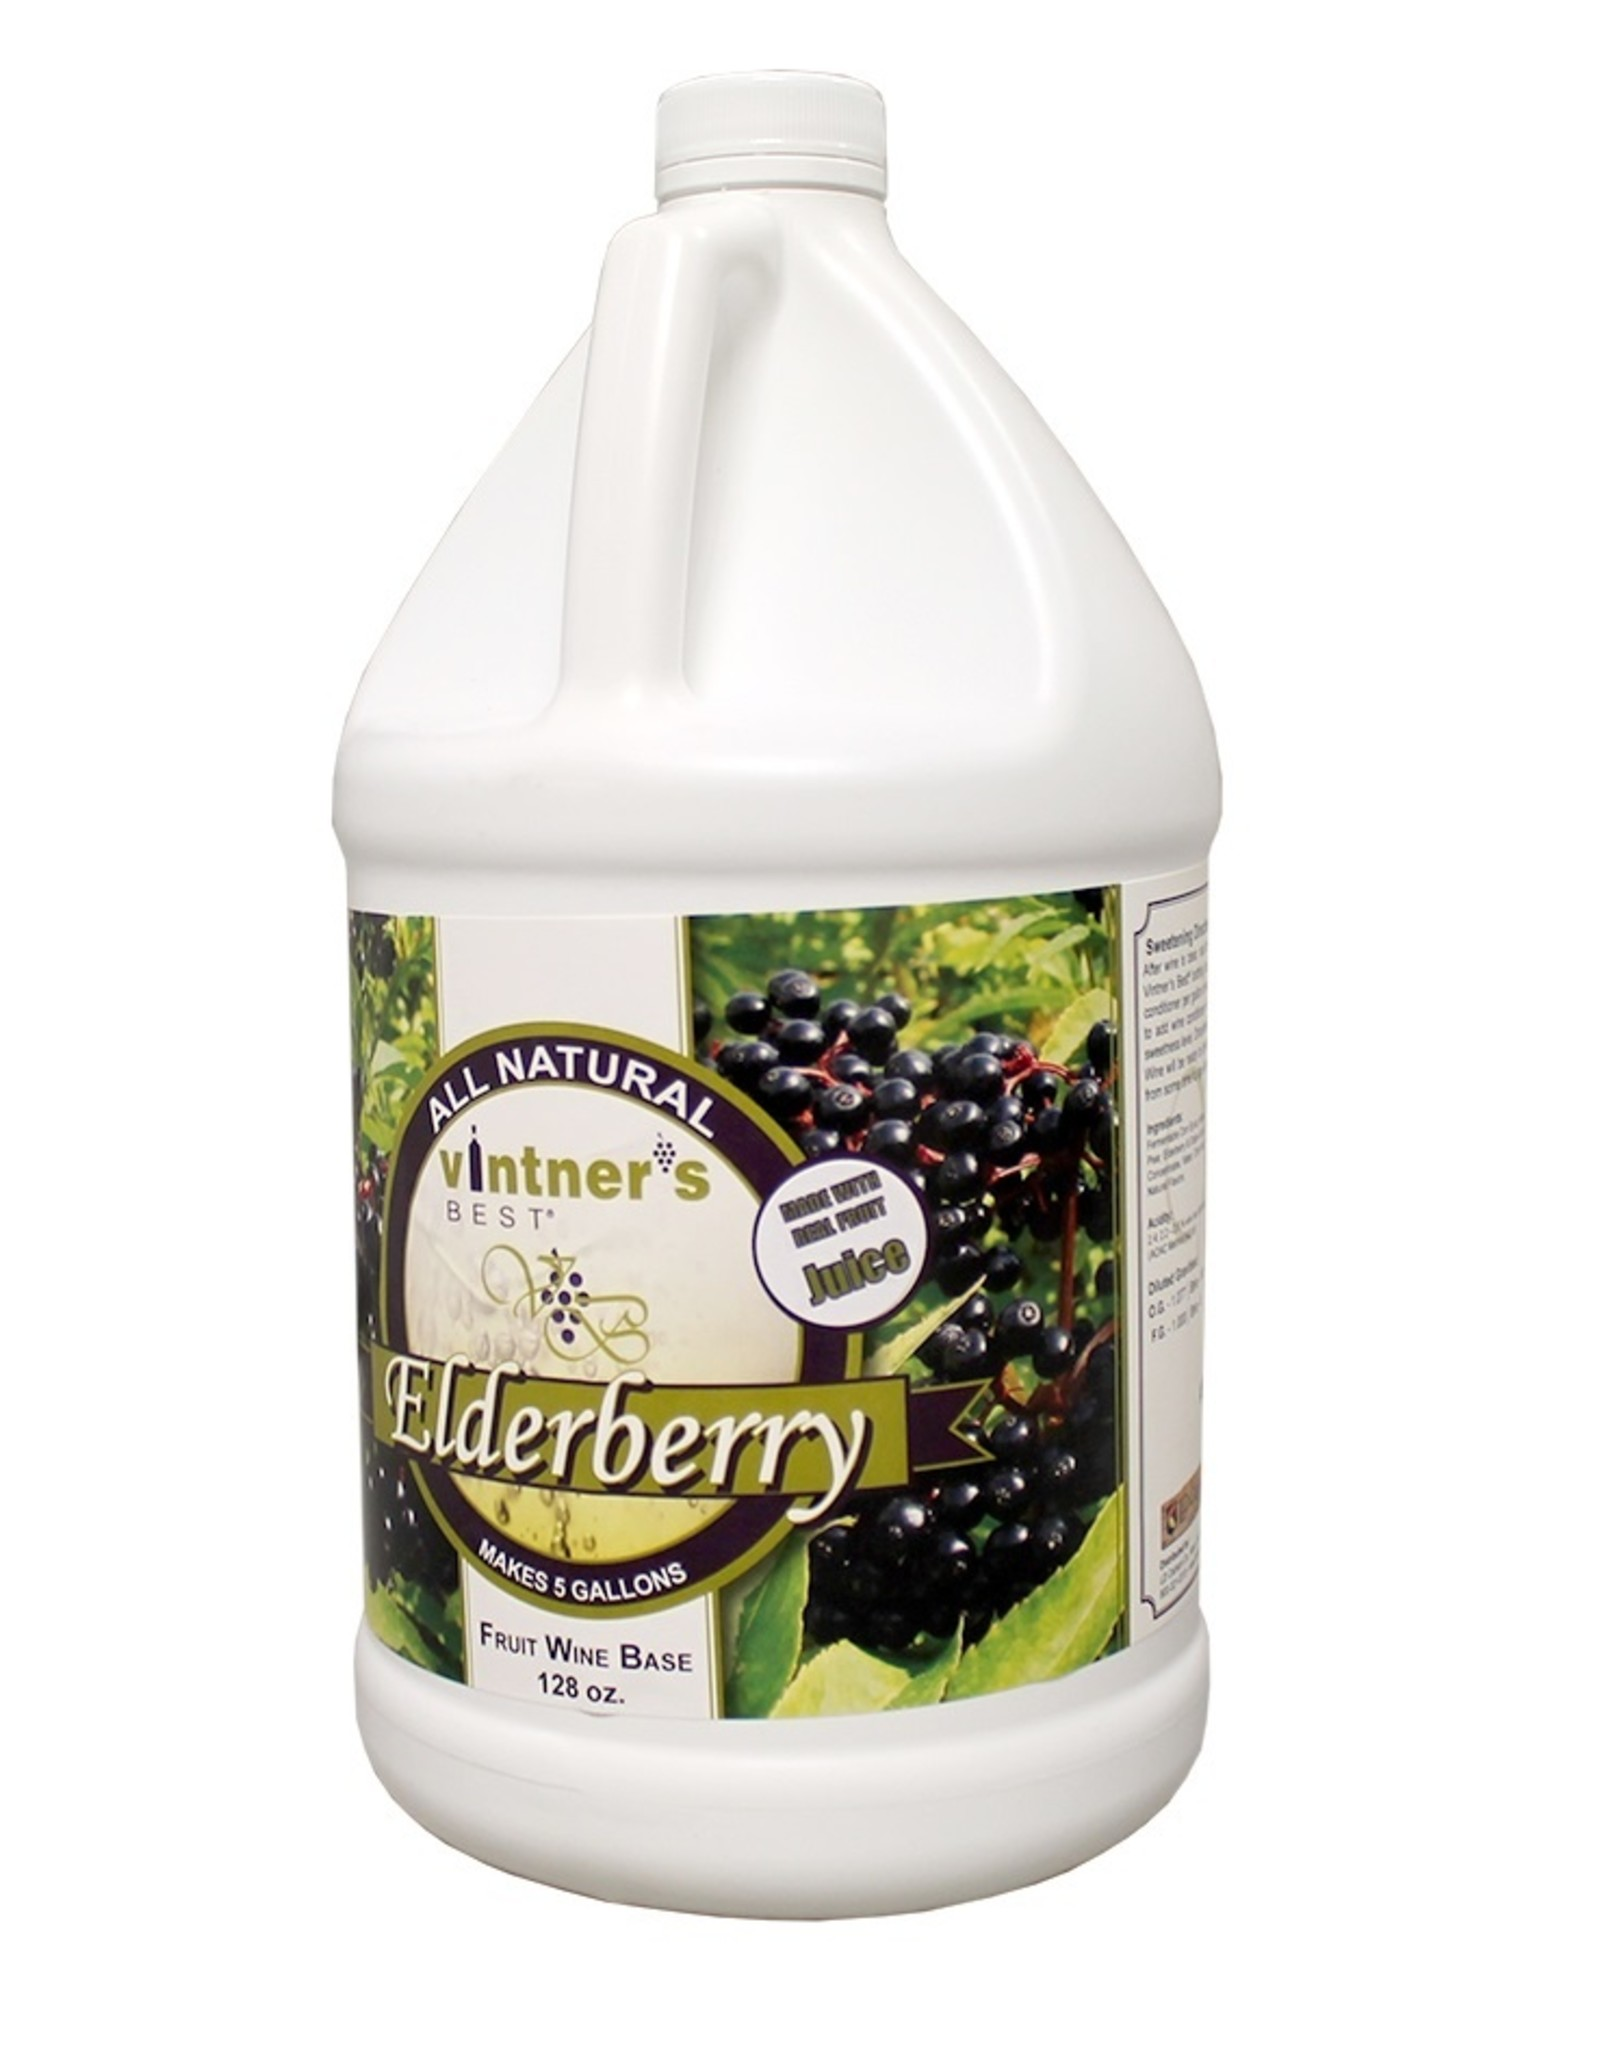 ELDERBERRY FRUIT WINE BASE 128 OZ (1 GAL)